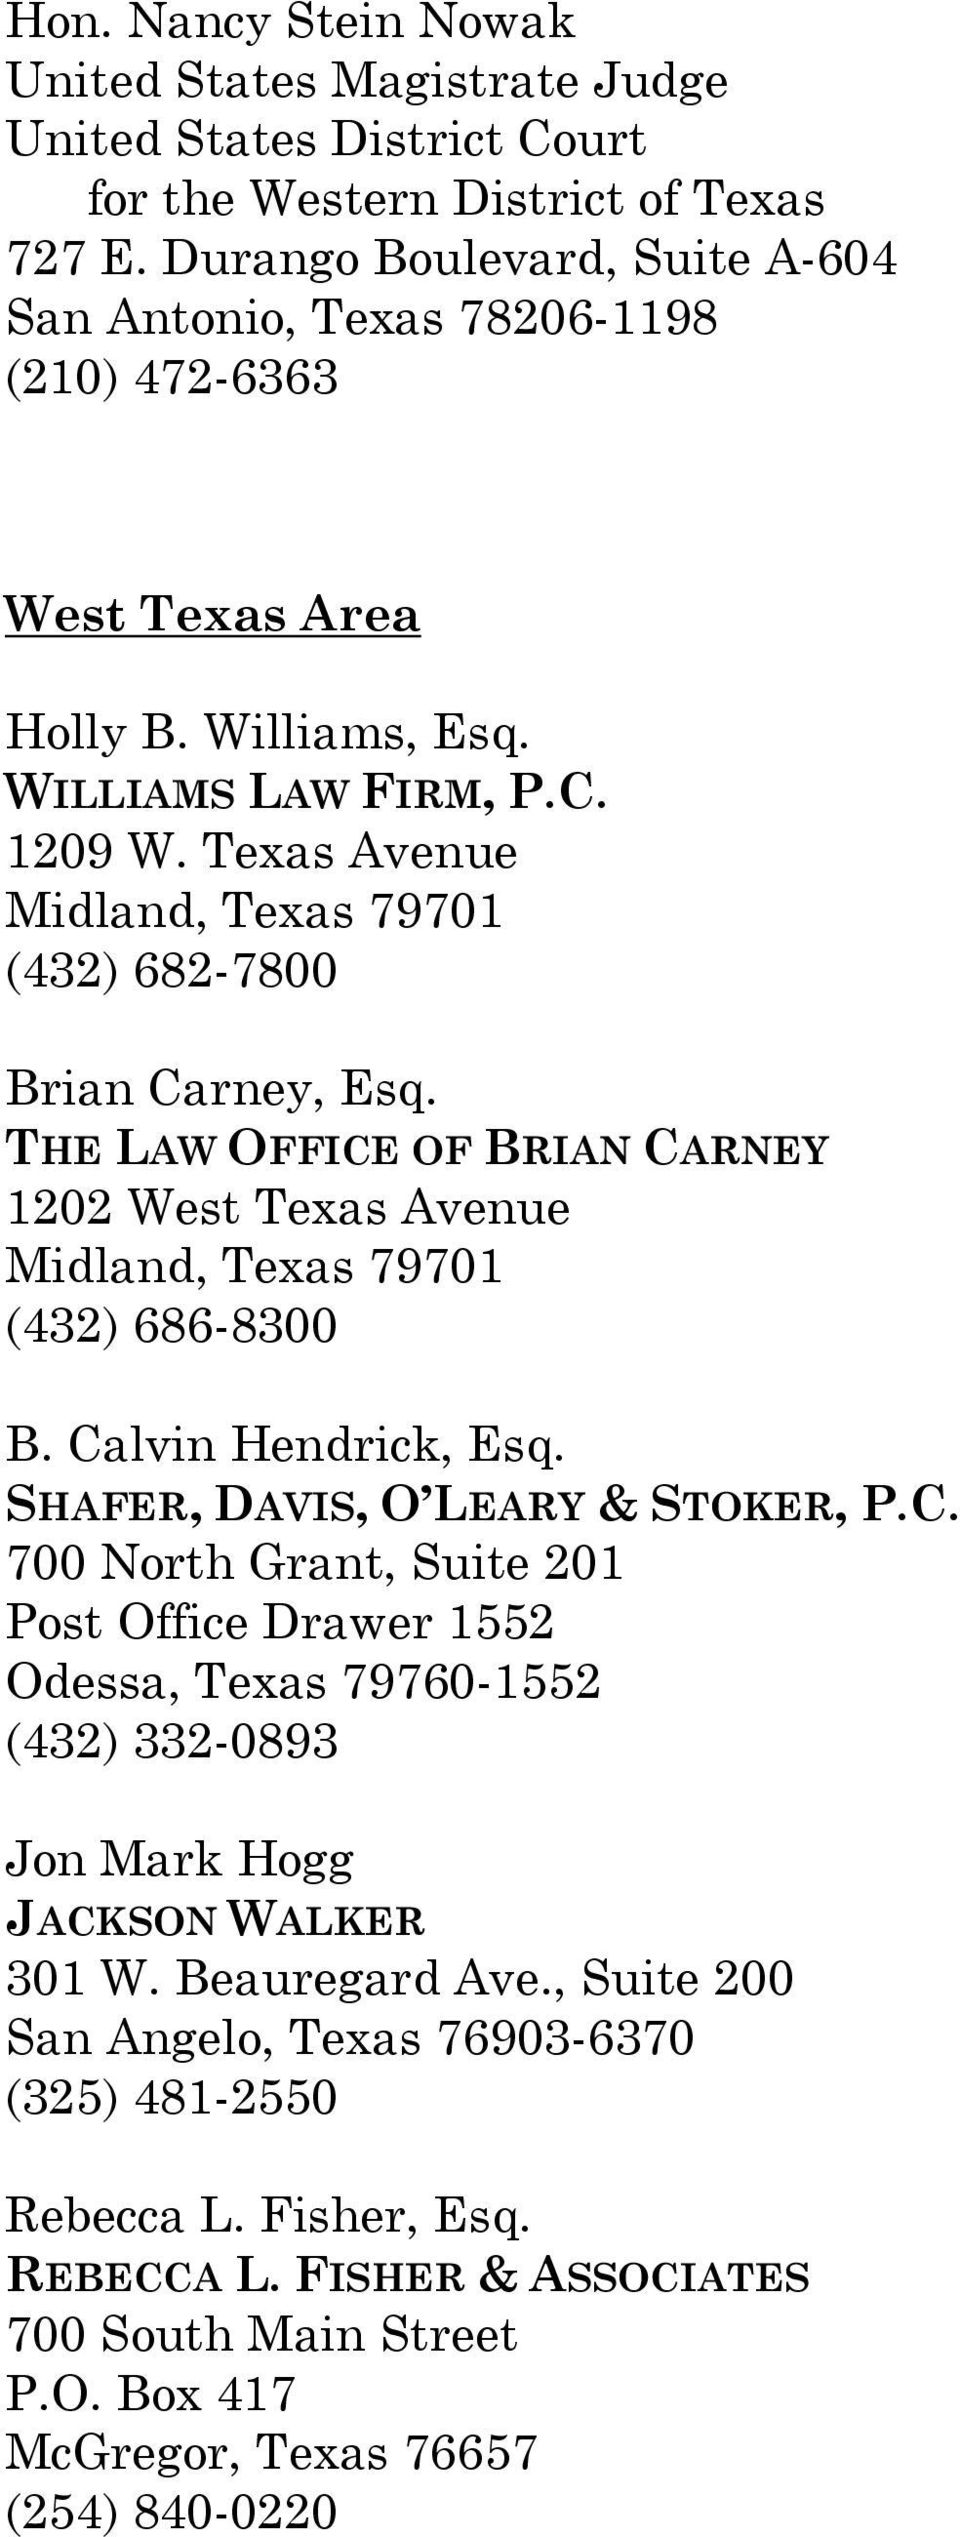 Texas Avenue Midland, Texas 79701 (432) 682-7800 Brian Carney, Esq. THE LAW OFFICE OF BRIAN CARNEY 1202 West Texas Avenue Midland, Texas 79701 (432) 686-8300 B. Calvin Hendrick, Esq.